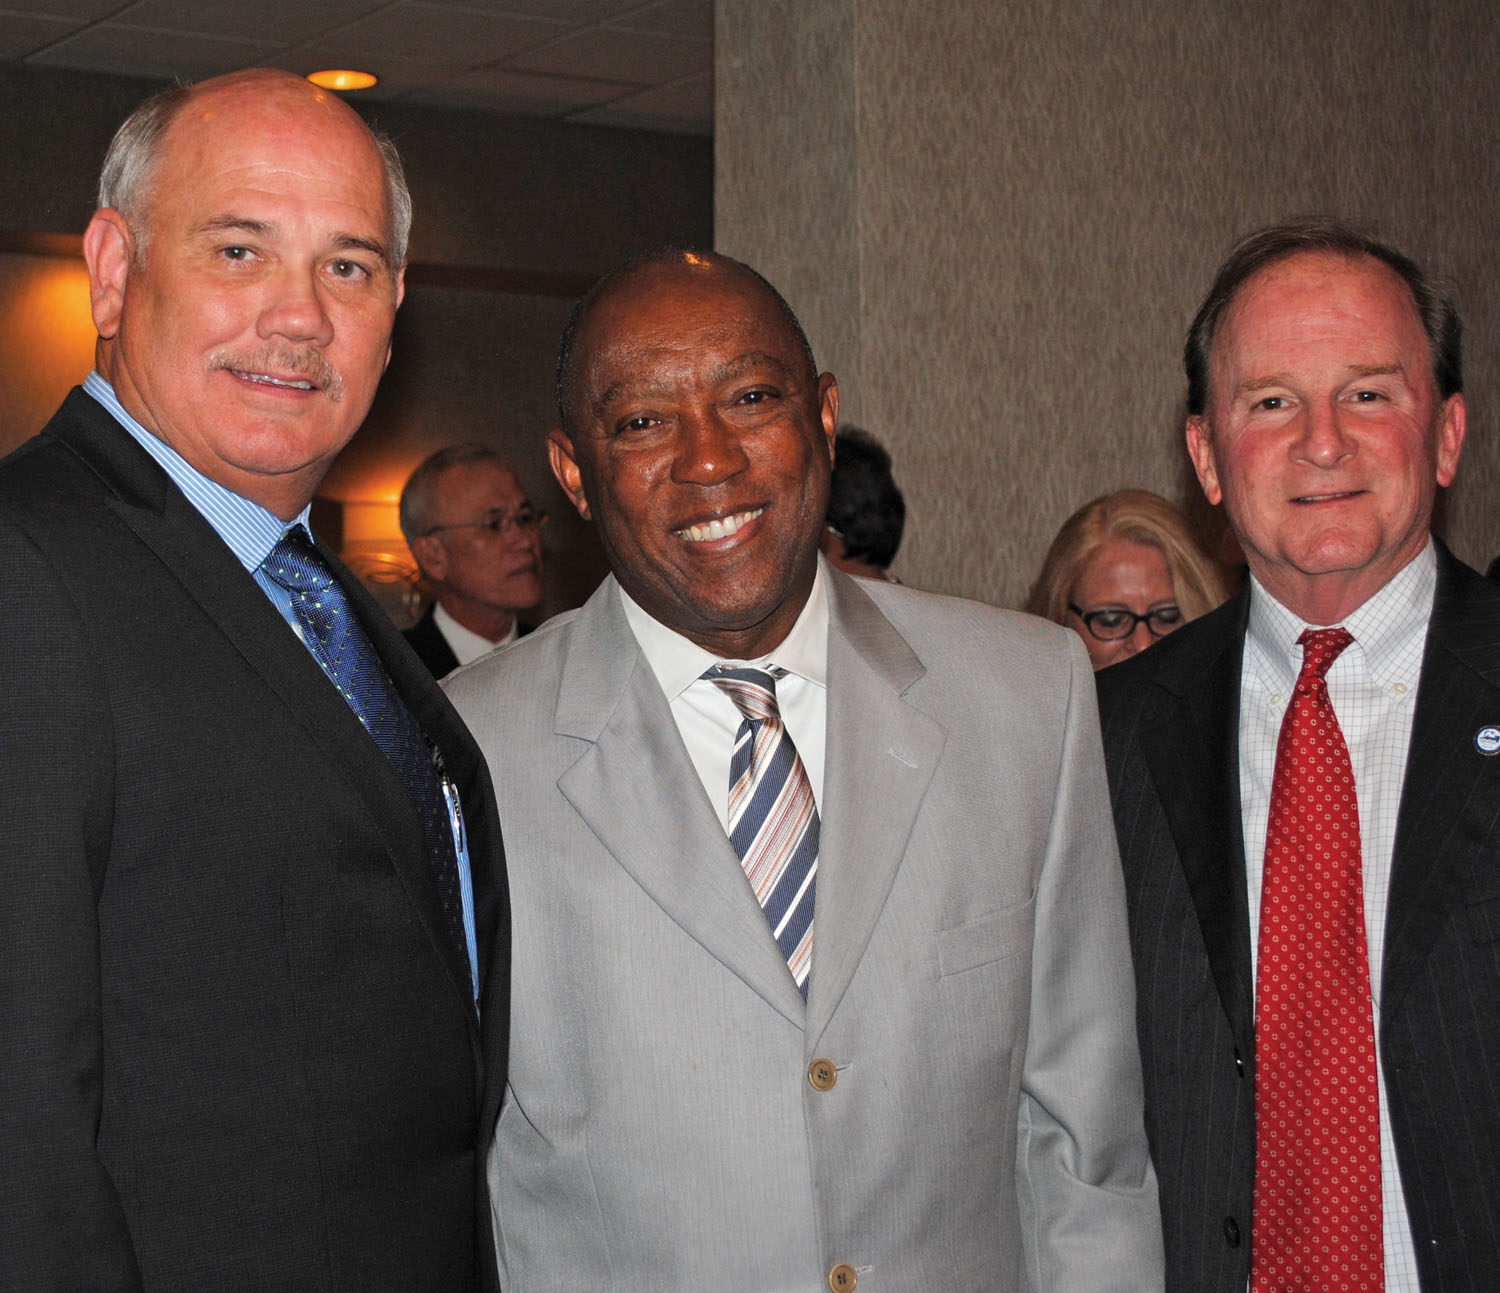 Bay Area Houston Economic Partnership President Bob Mitchell, left, and Houston City Councilman Dave Martin, right, welcome Houston Mayor Sylvester Turner to the BAHEP reception – his third visit to Clear Lake since becoming mayor in January.